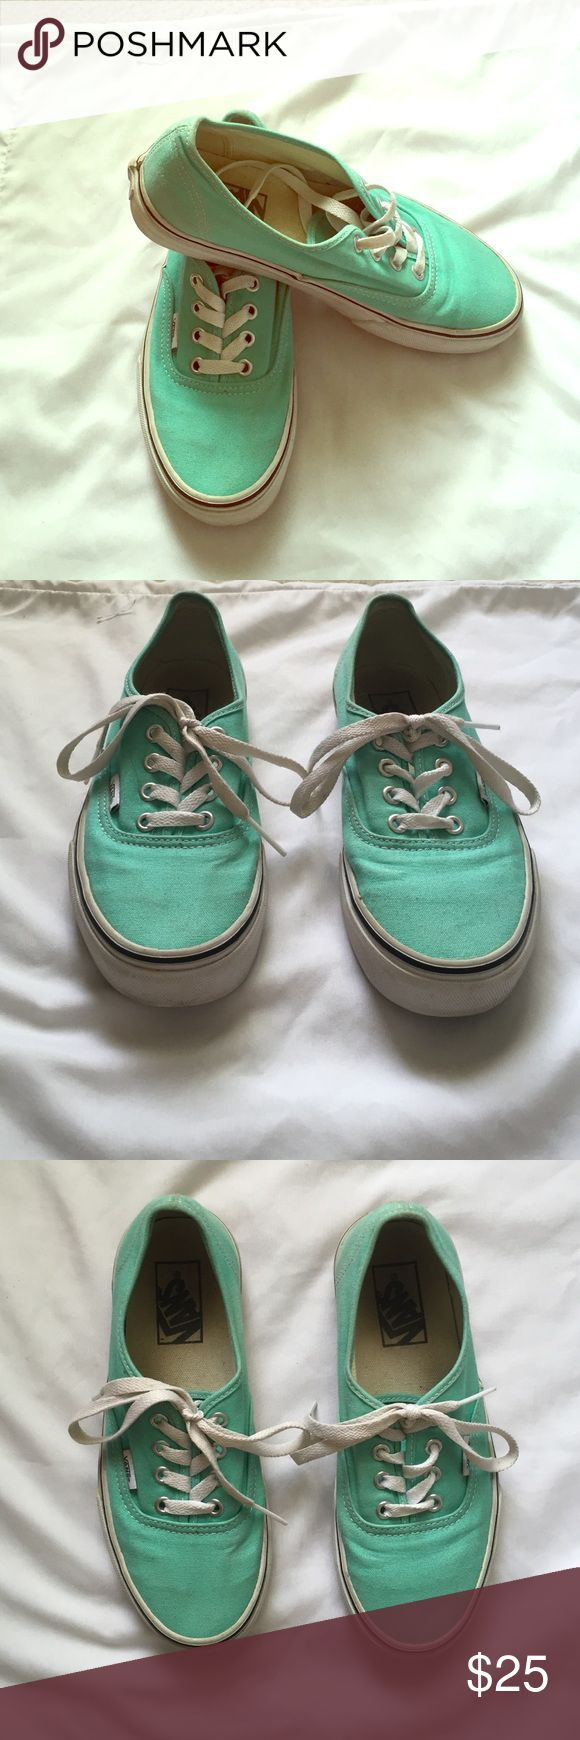 Tiffany blue vans These shoes have only been worn about 3 times! They are in really good condition so feel free to offer😊 Vans Shoes Sneakers